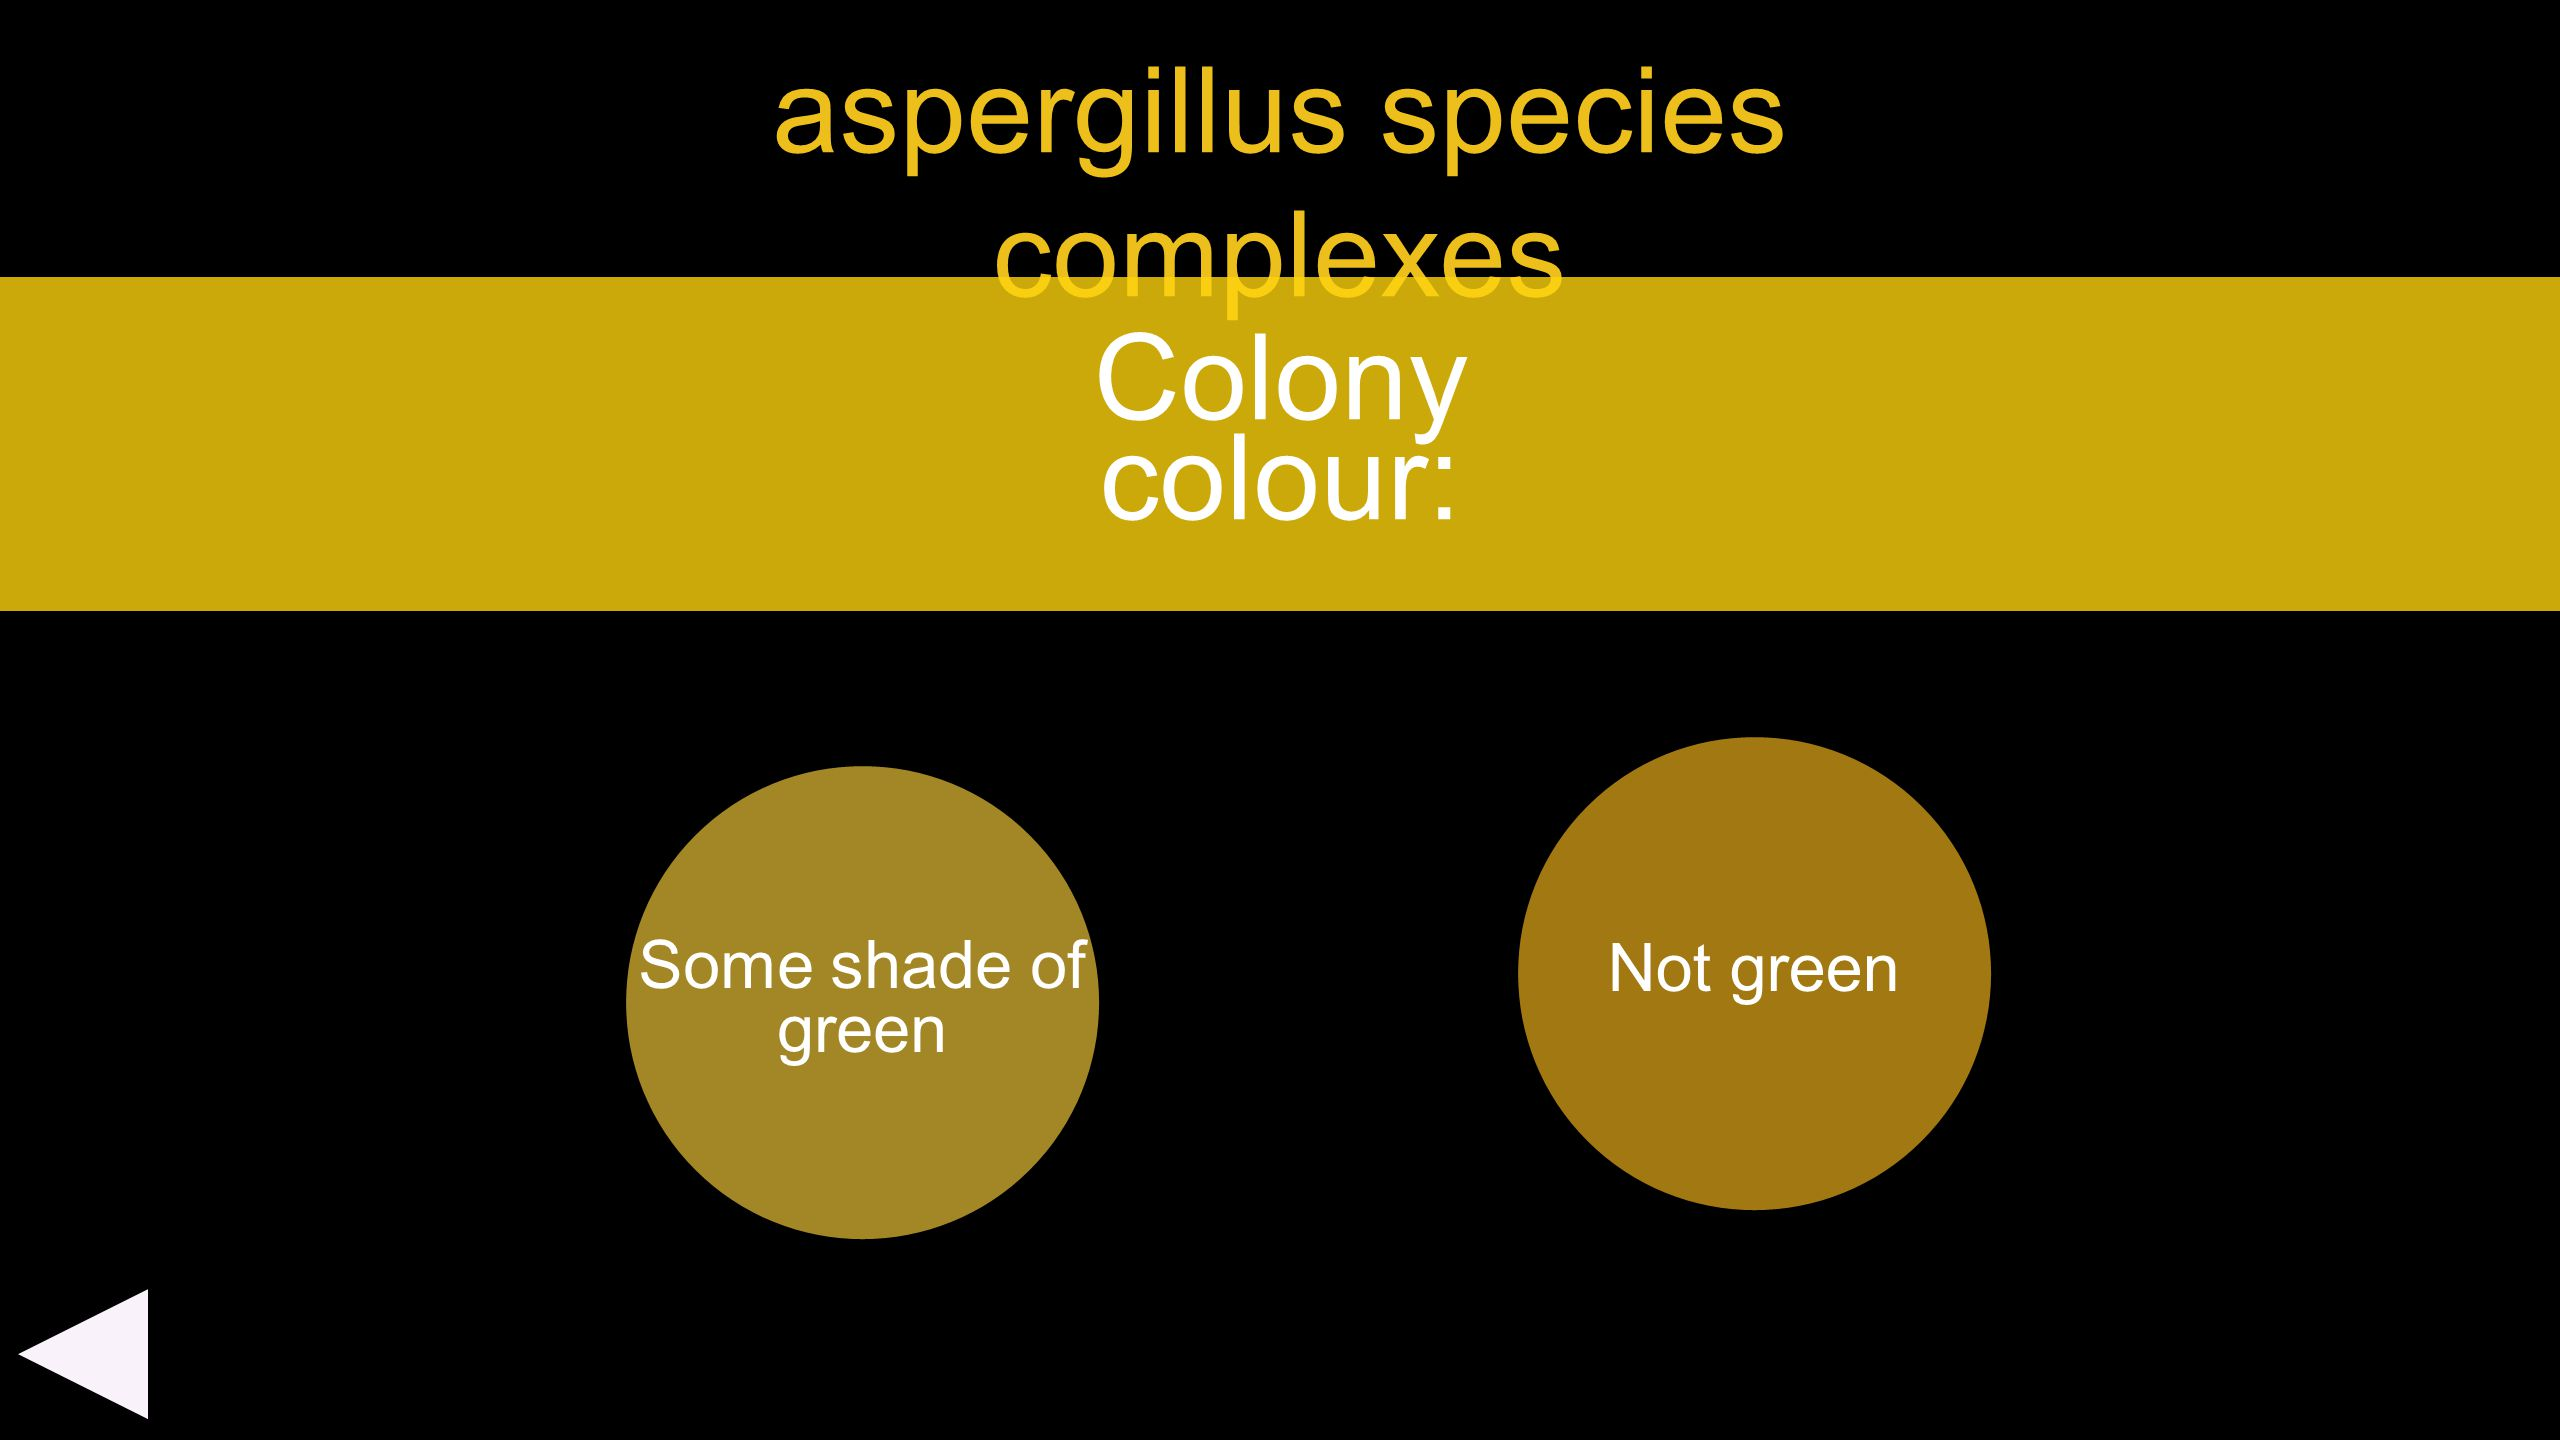 aspergillus species complexes Some shade of green Colony colour: Not green